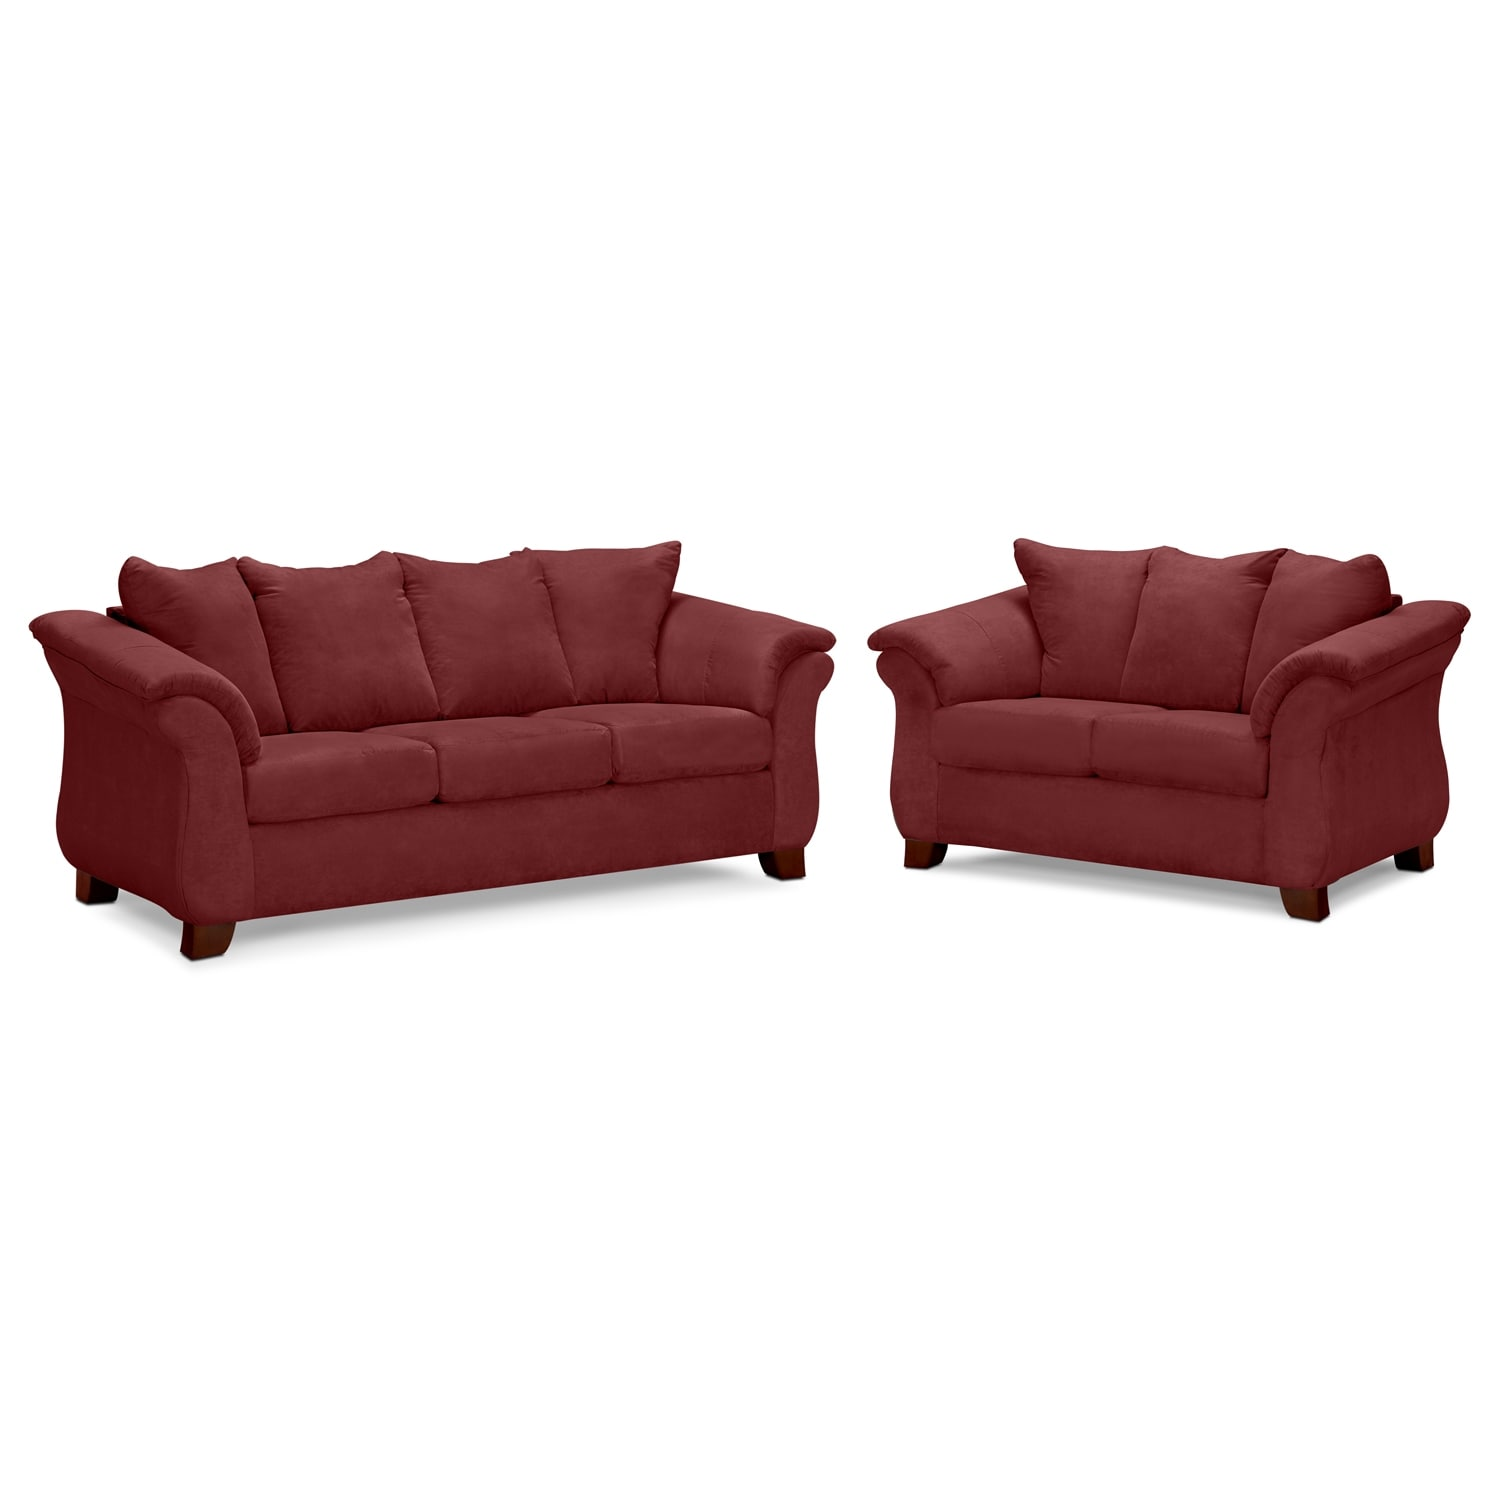 Adrian Loveseat Red Value City Furniture